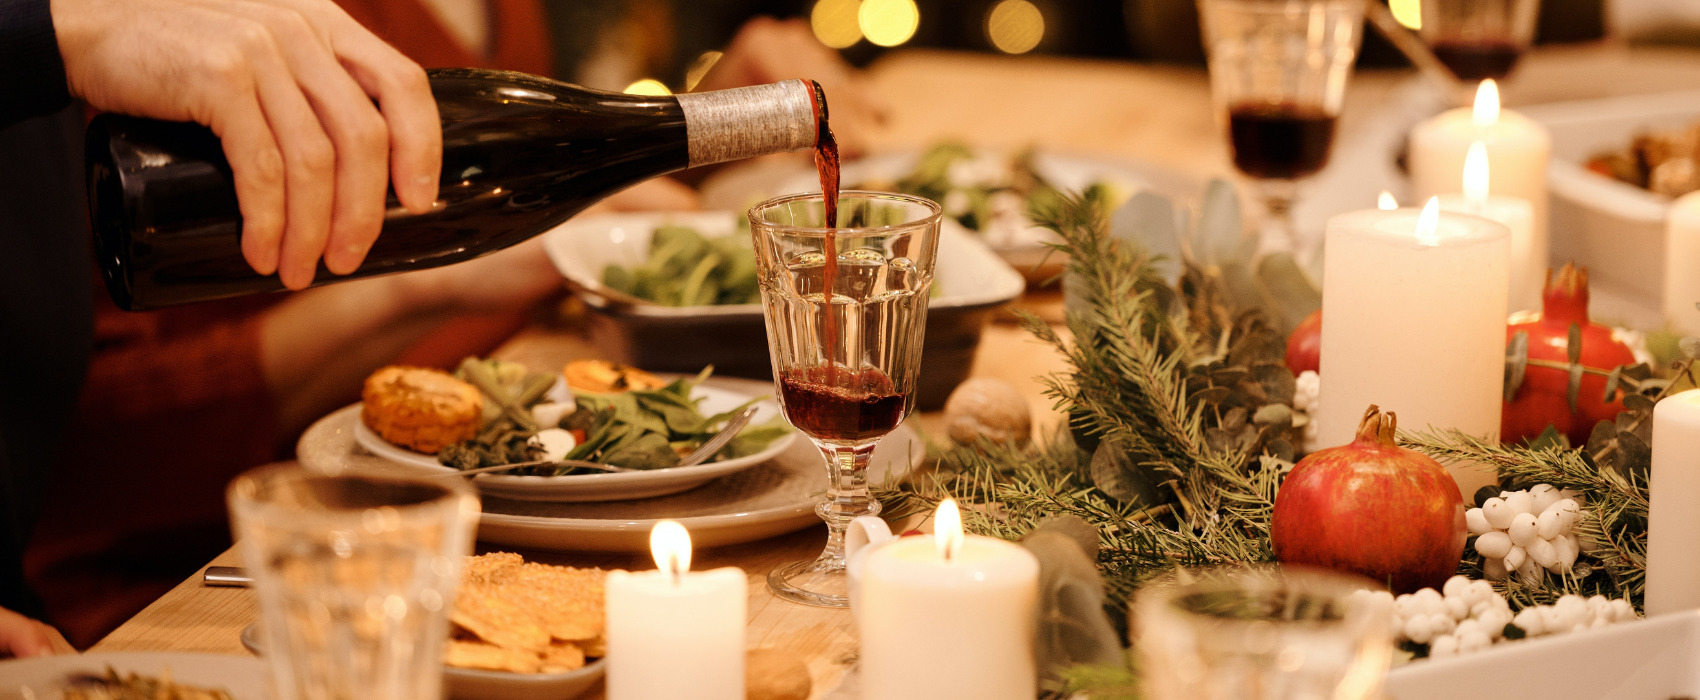 wine and christmas dinner